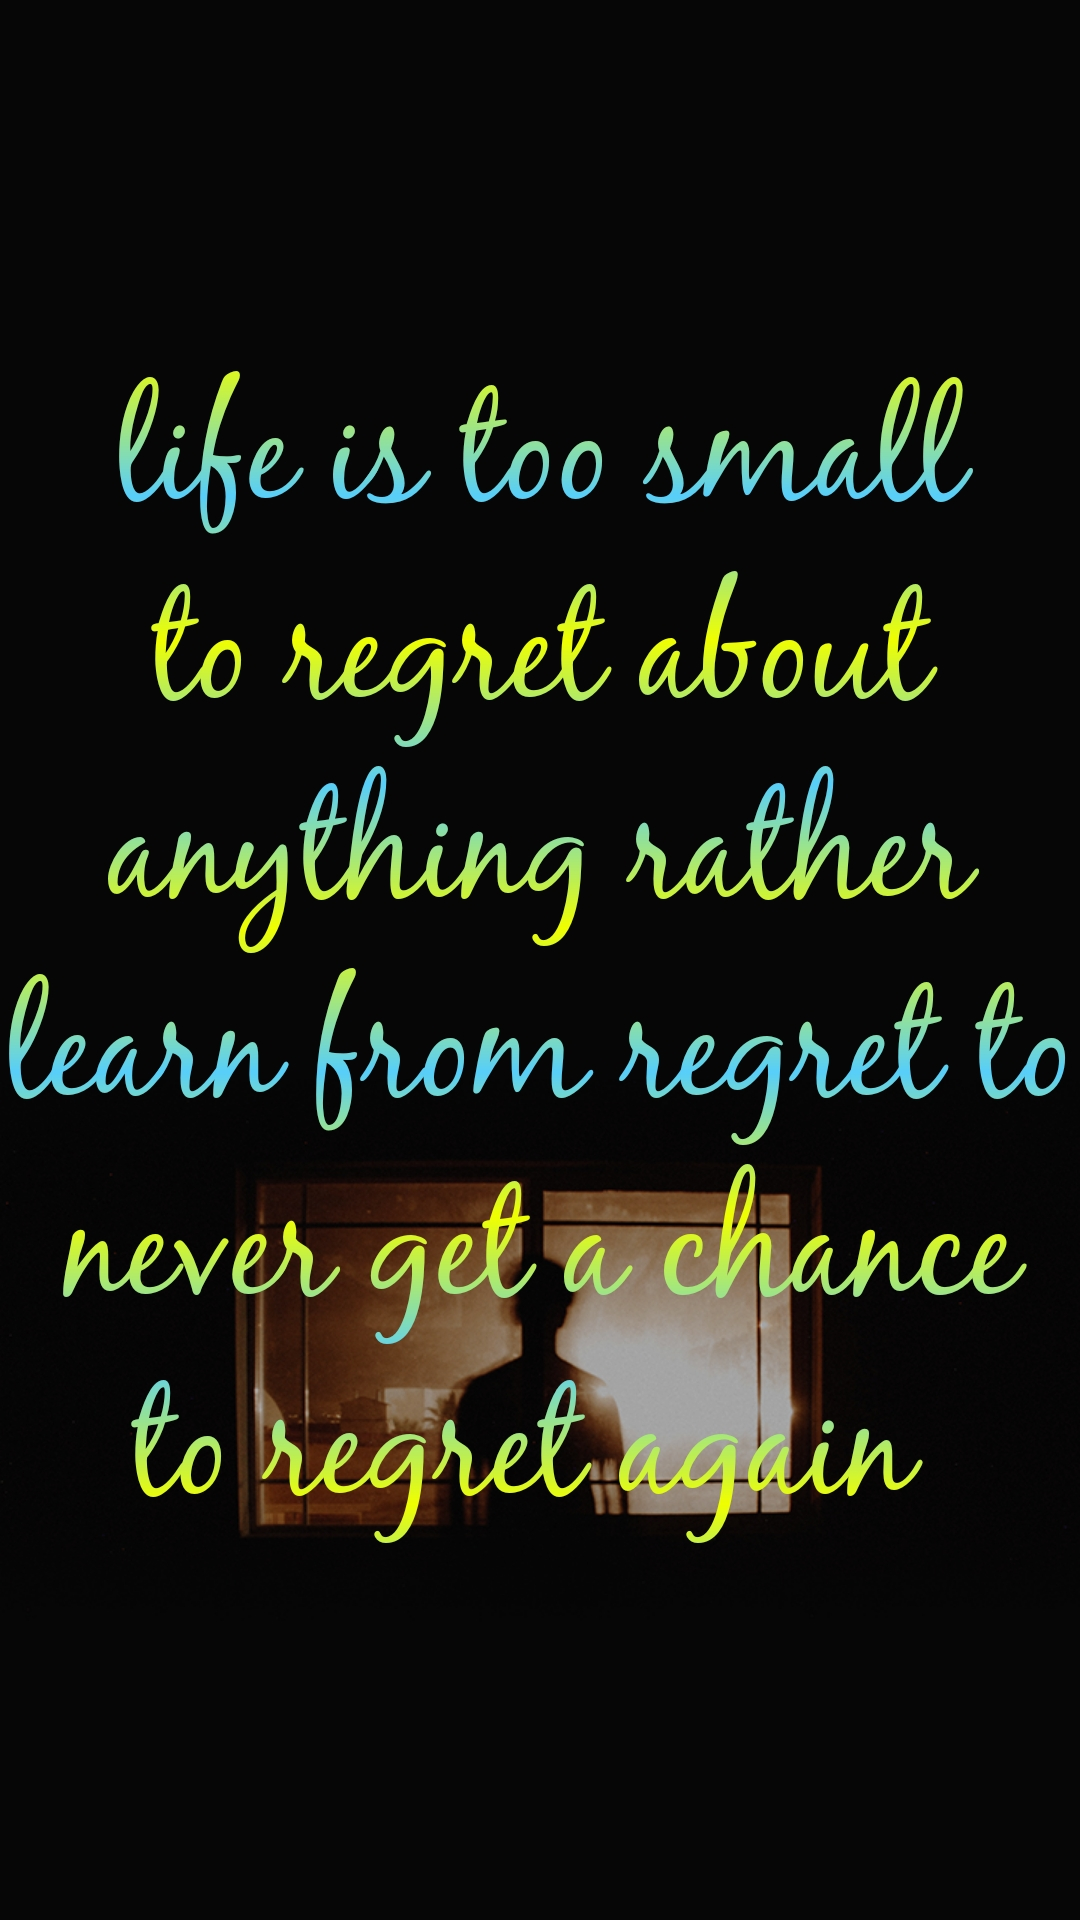 life is too small to regret about anything rather learn from regret to never get a chance to regret again